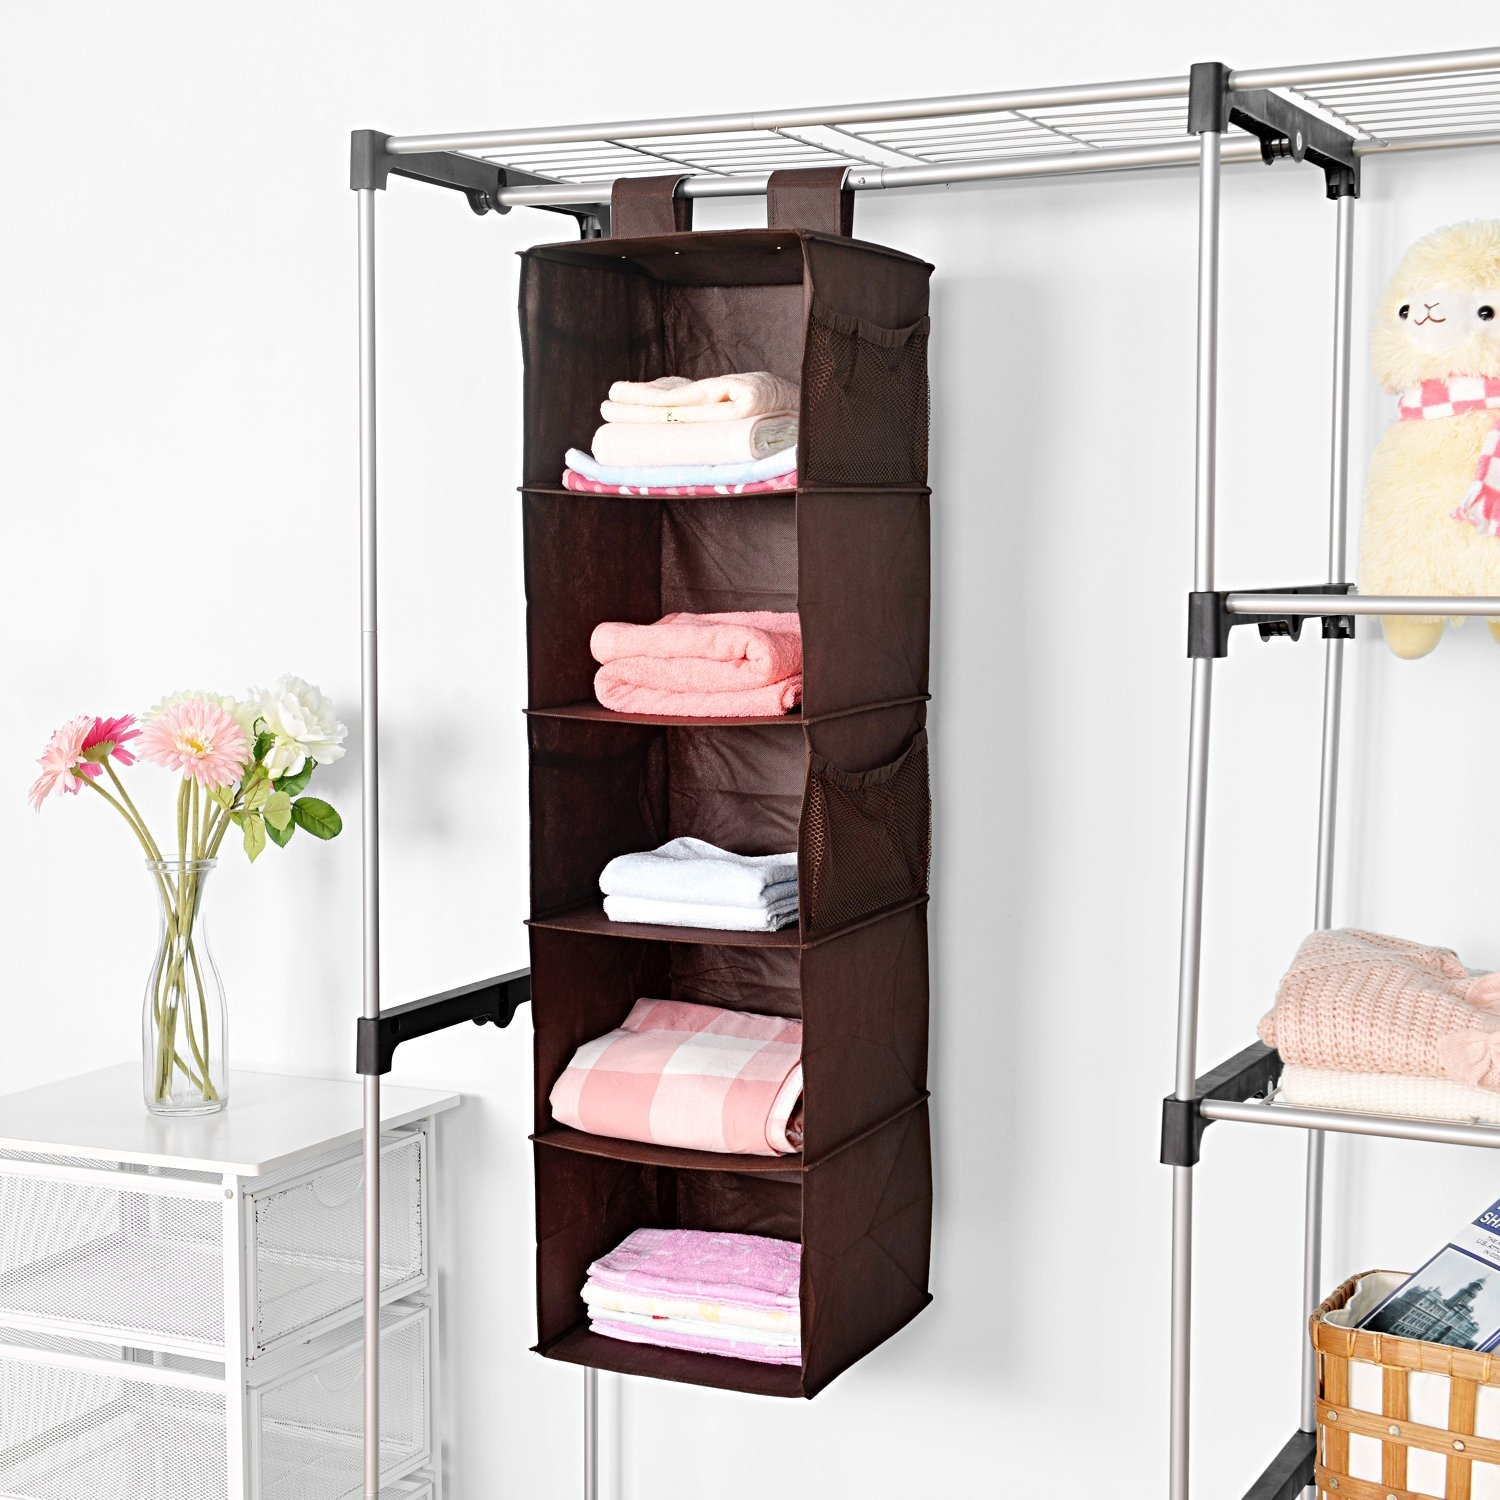 5 Shelf Hanging Closet Organizer Maidmax Brown Hanging Accessory Regarding Hanging Wardrobe Shelves (Image 3 of 25)